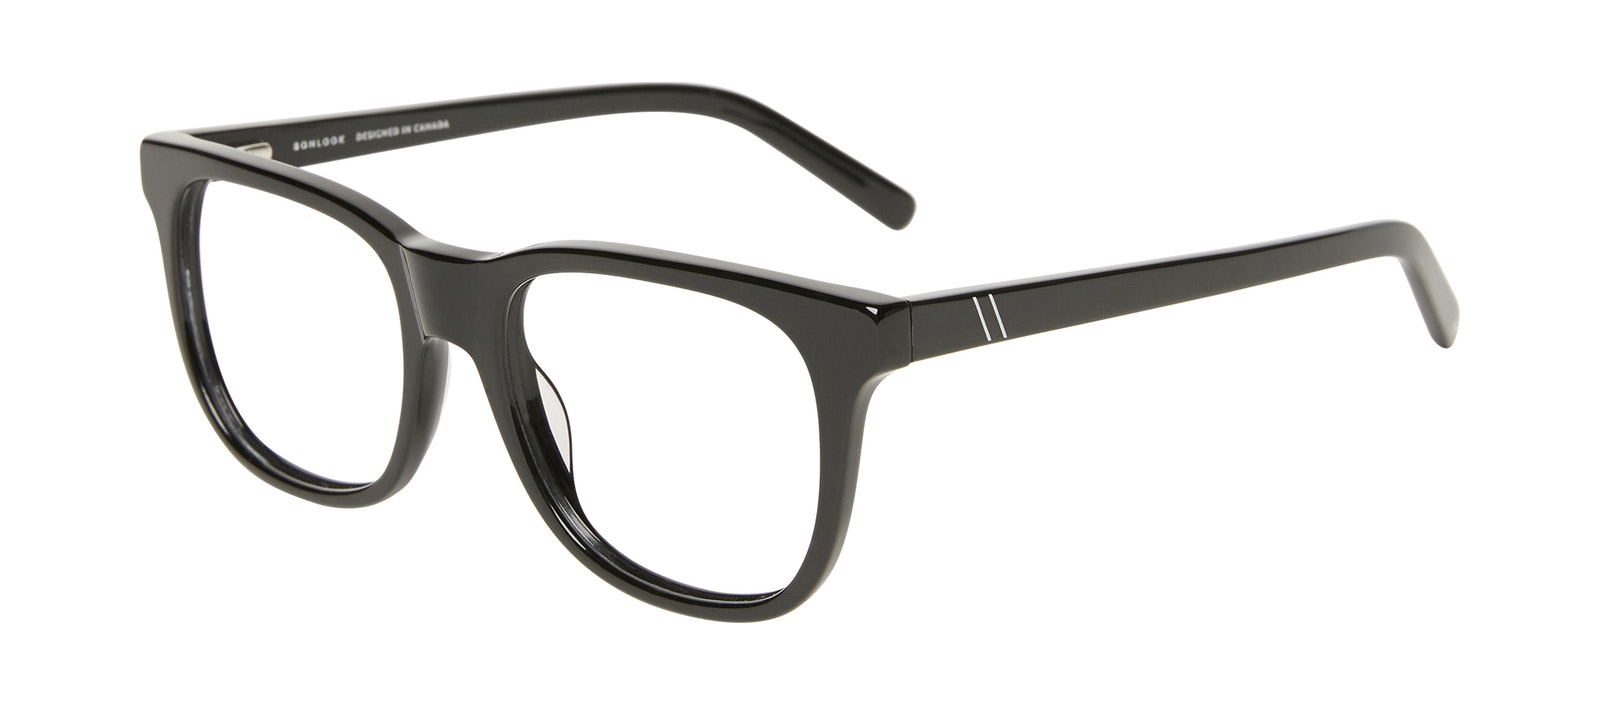 Affordable Fashion Glasses Square Eyeglasses Men Solo Black Tilt